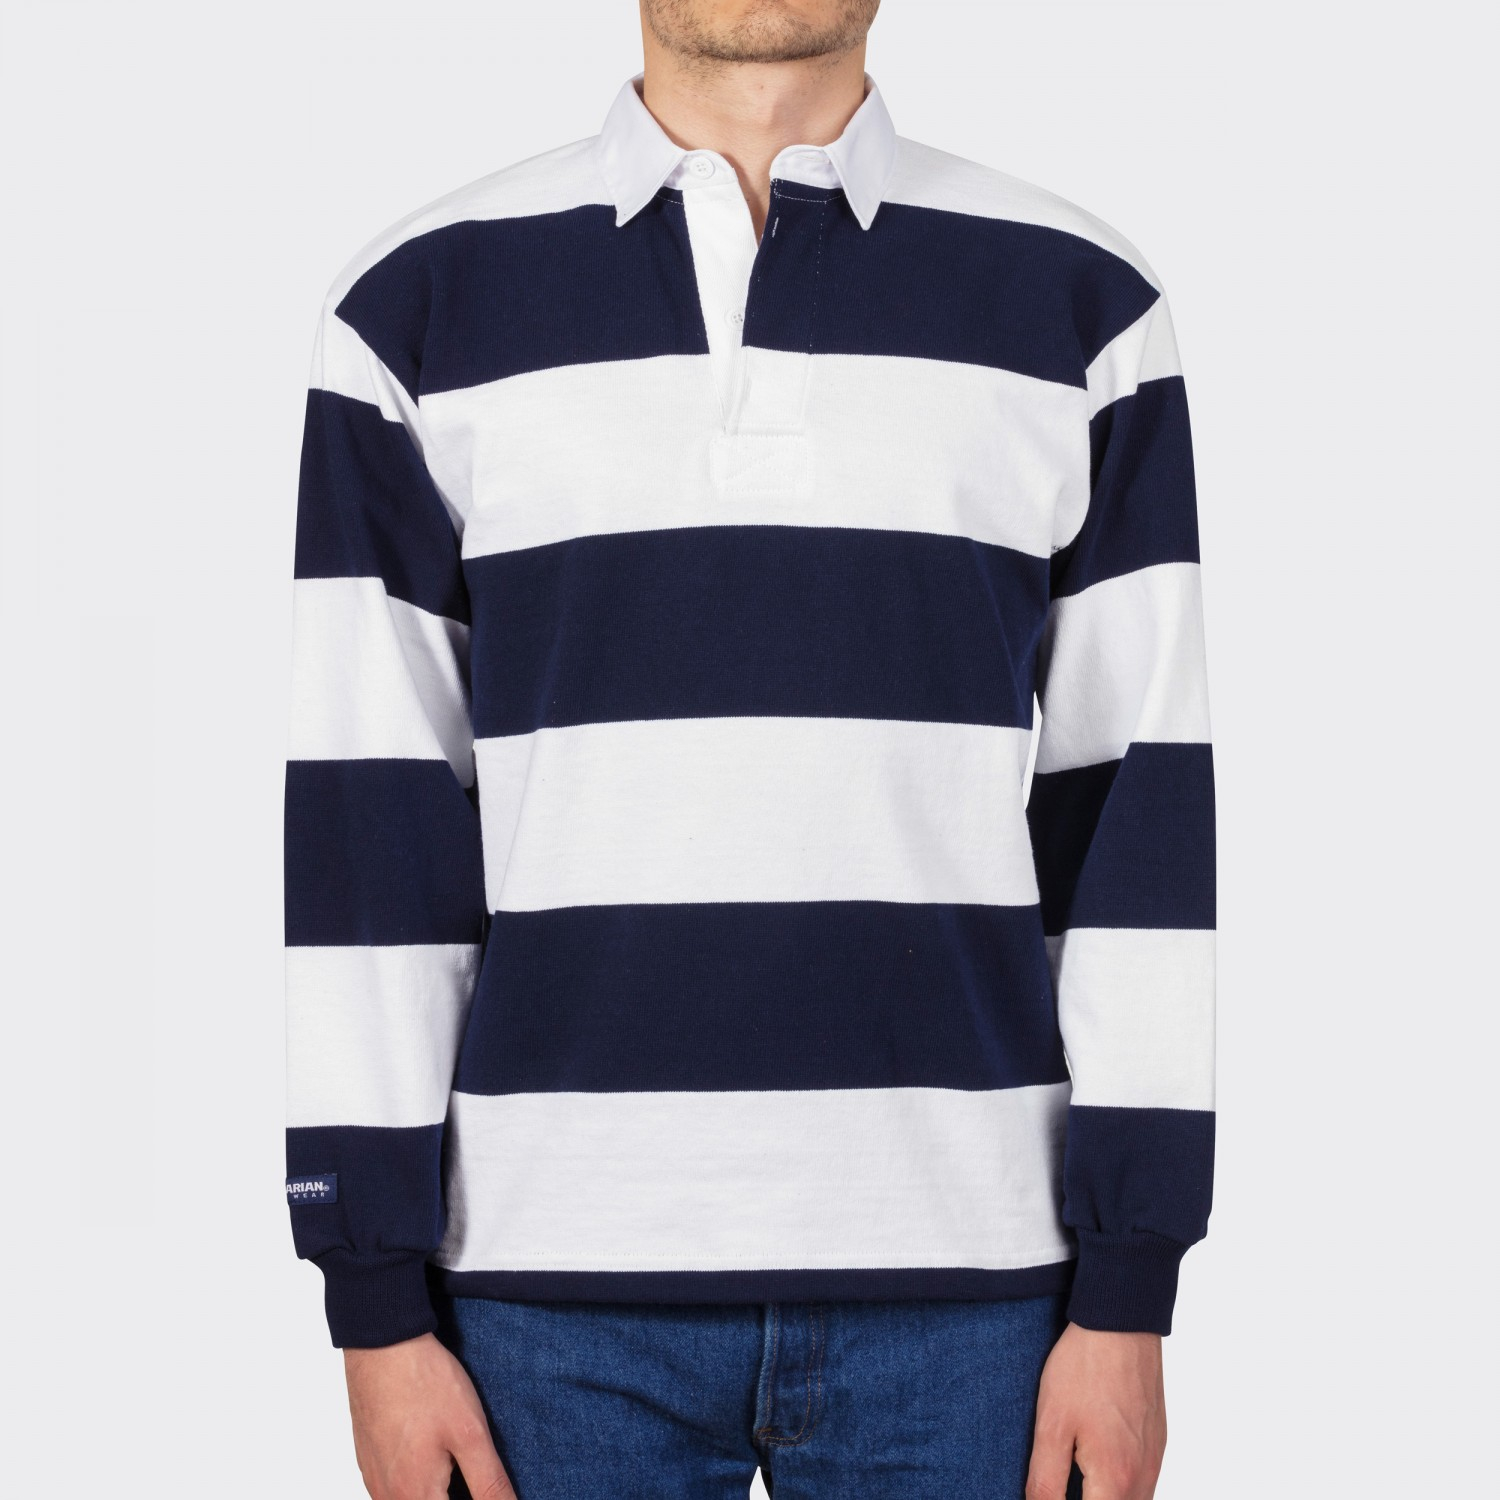 Striped Rugby Shirt White Navy